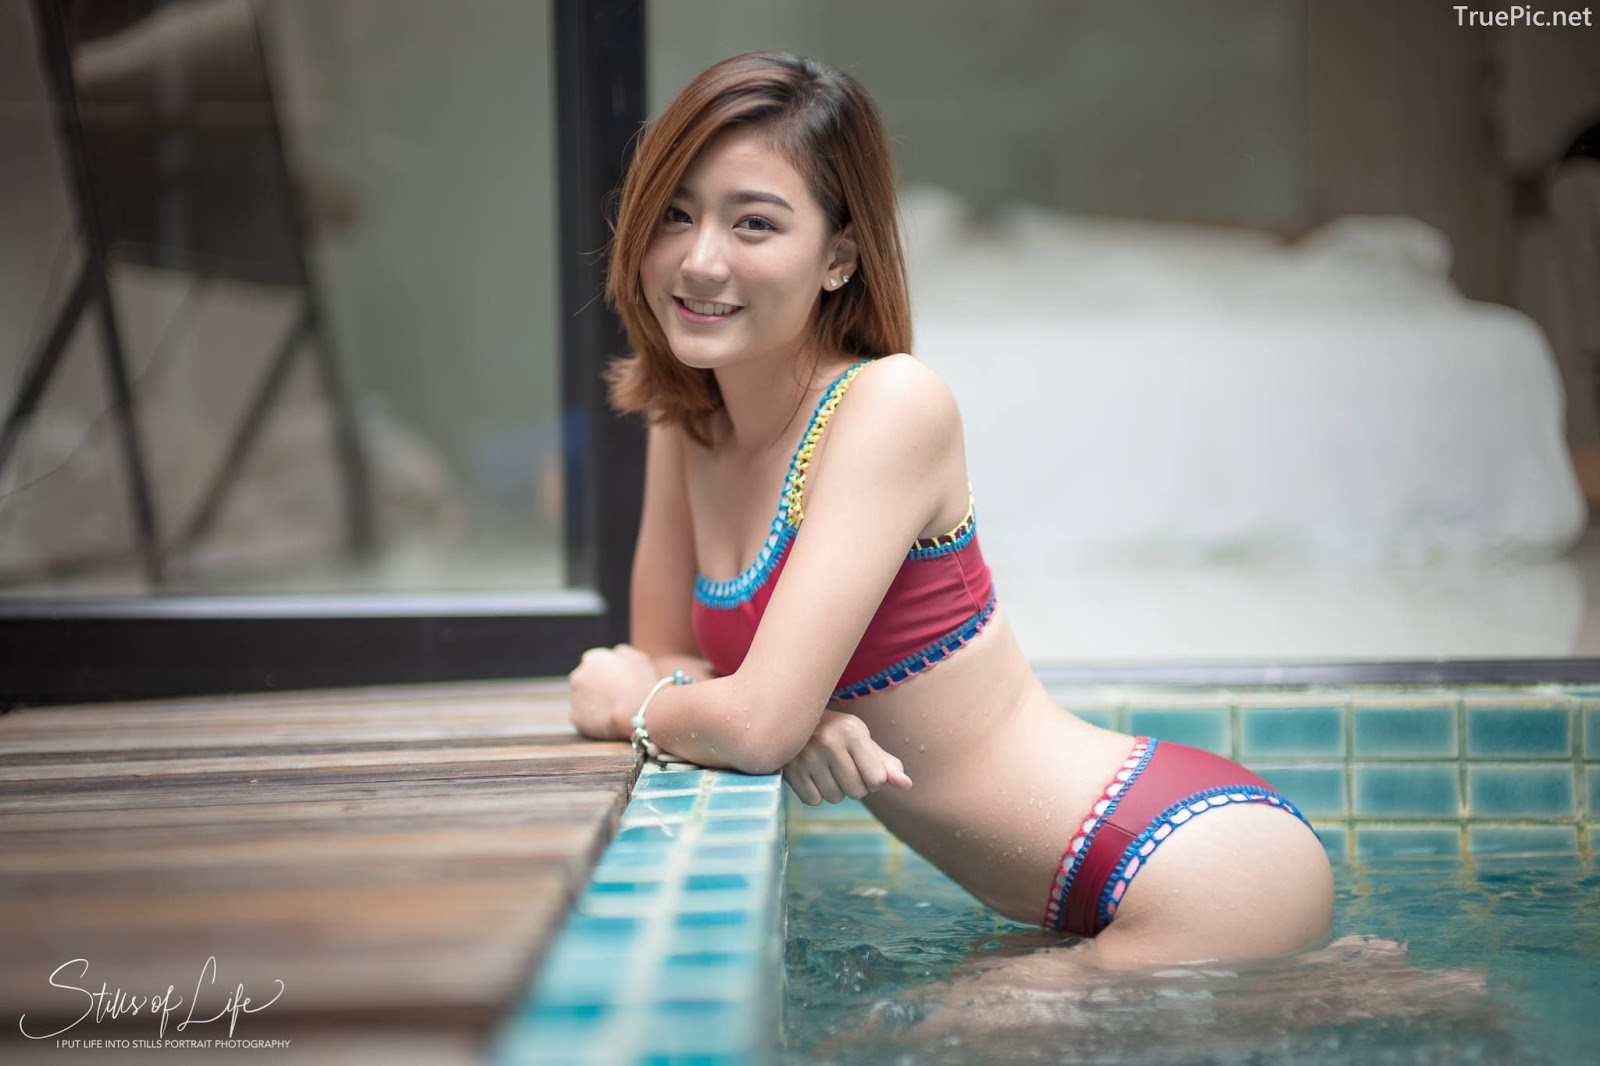 Thailand model - Pattaravadee Boonmeesup - Earn Red Swimsuit